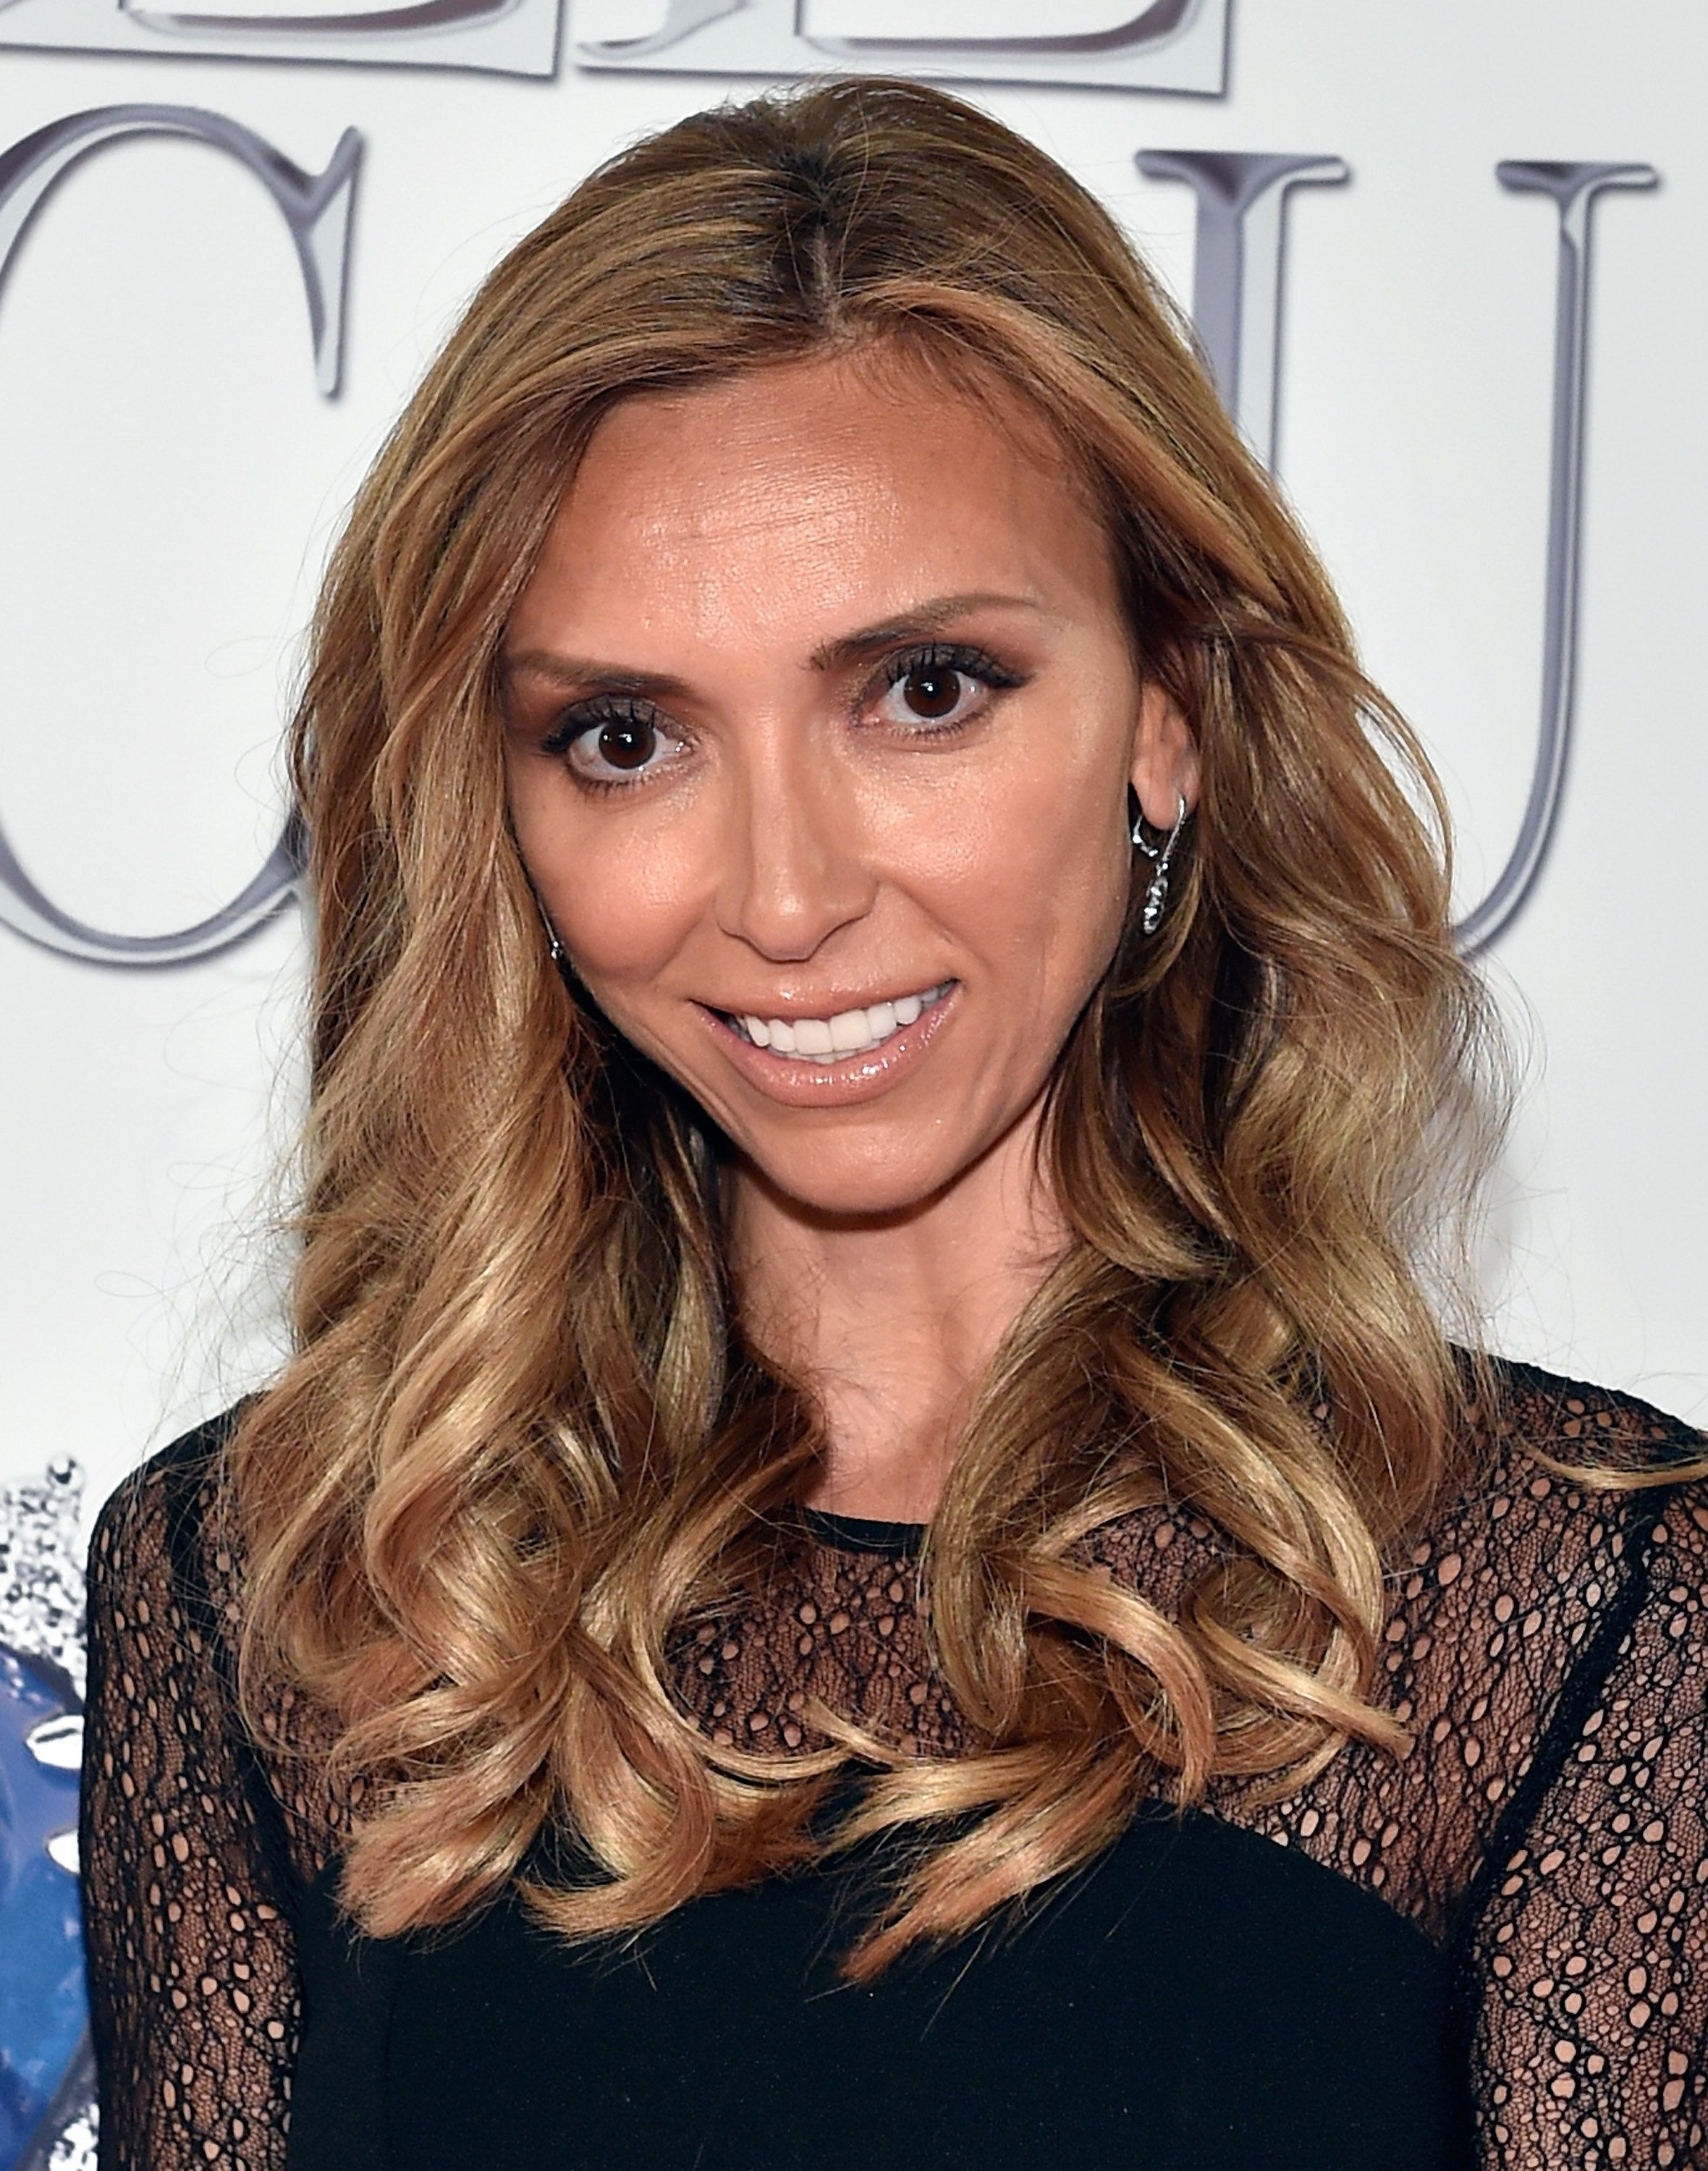 LAS VEGAS, NV - MAY 31:  Television personality Giuliana Rancic arrives at the Le Vian 2016 Red Carpet Revue at the Mandalay Bay Convention Center on May 31, 2015 in Las Vegas, Nevada.  (Photo by David Becker/Getty Images for Le Vian)